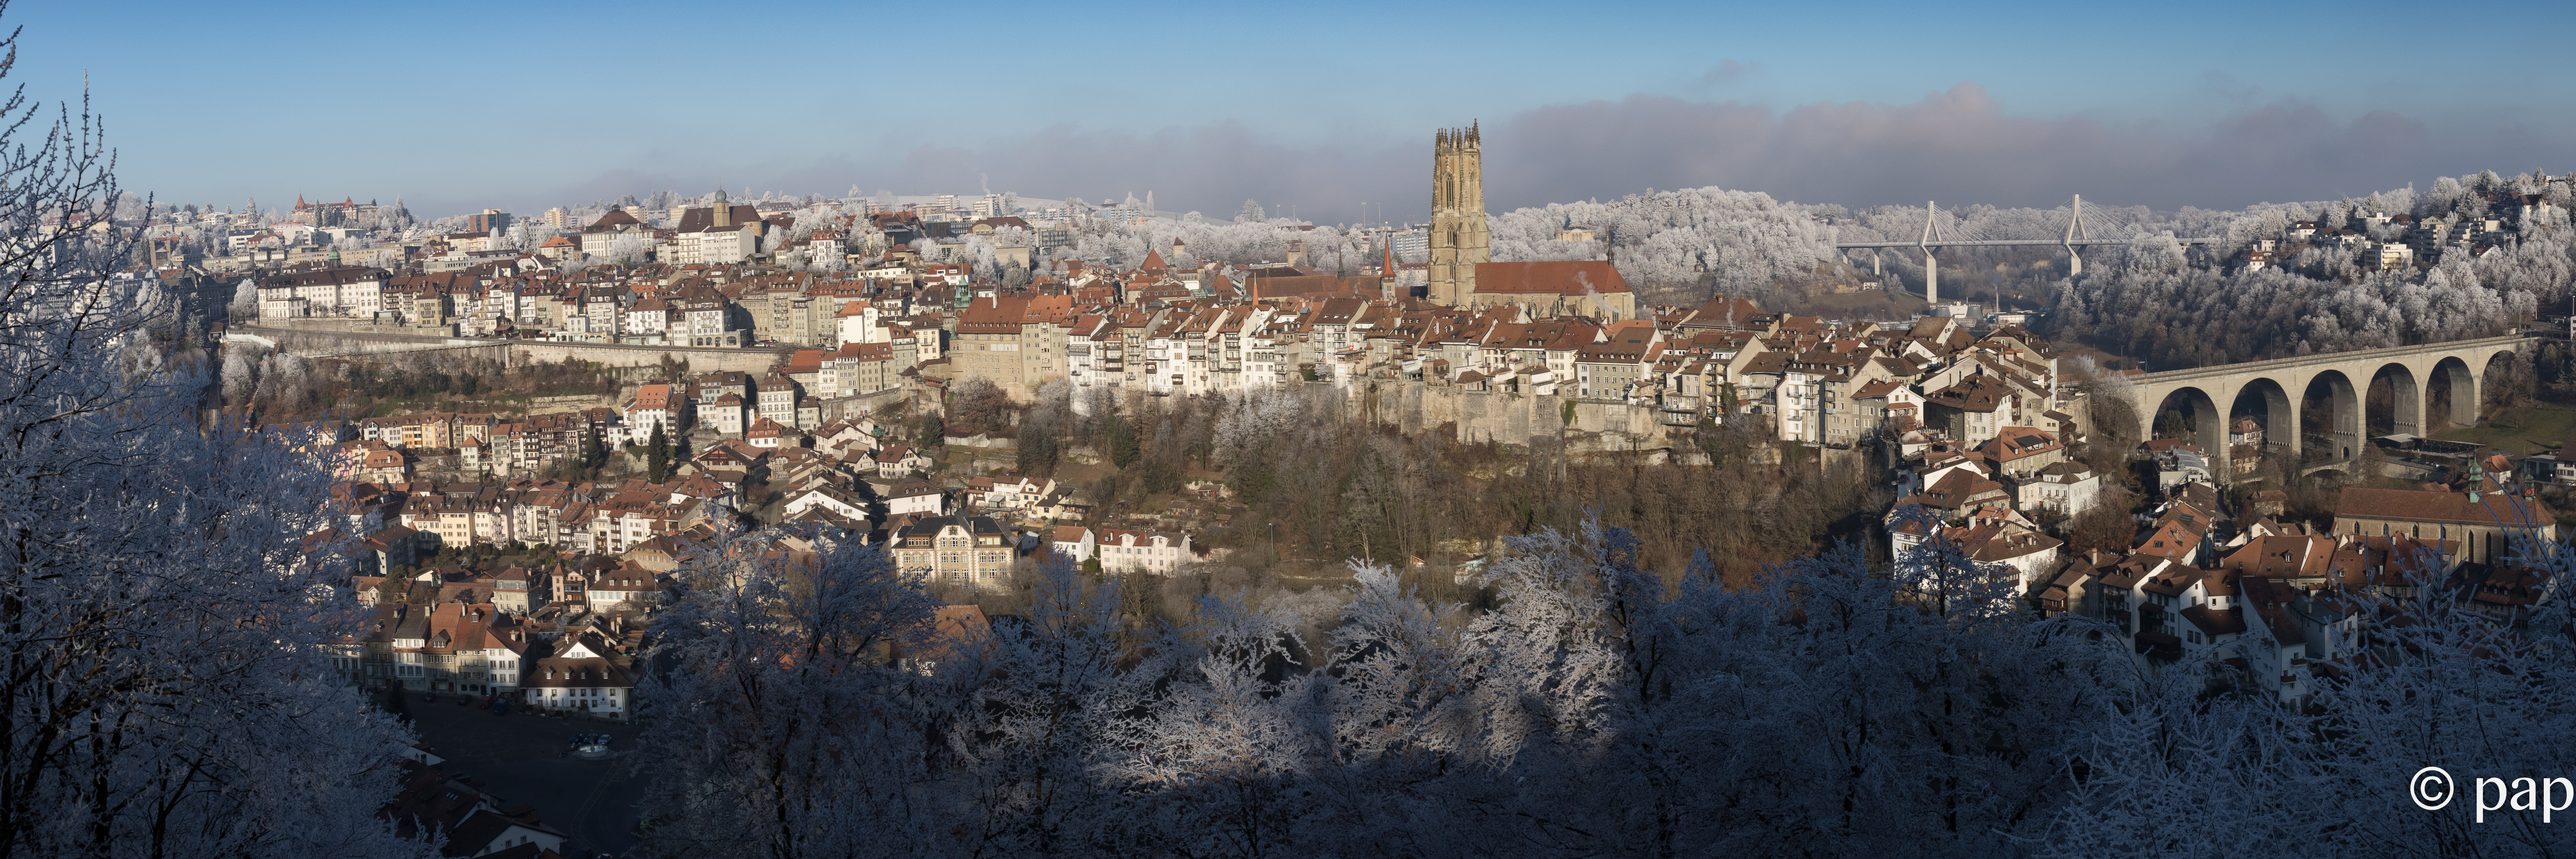 Panorama Fribourg sous le givre